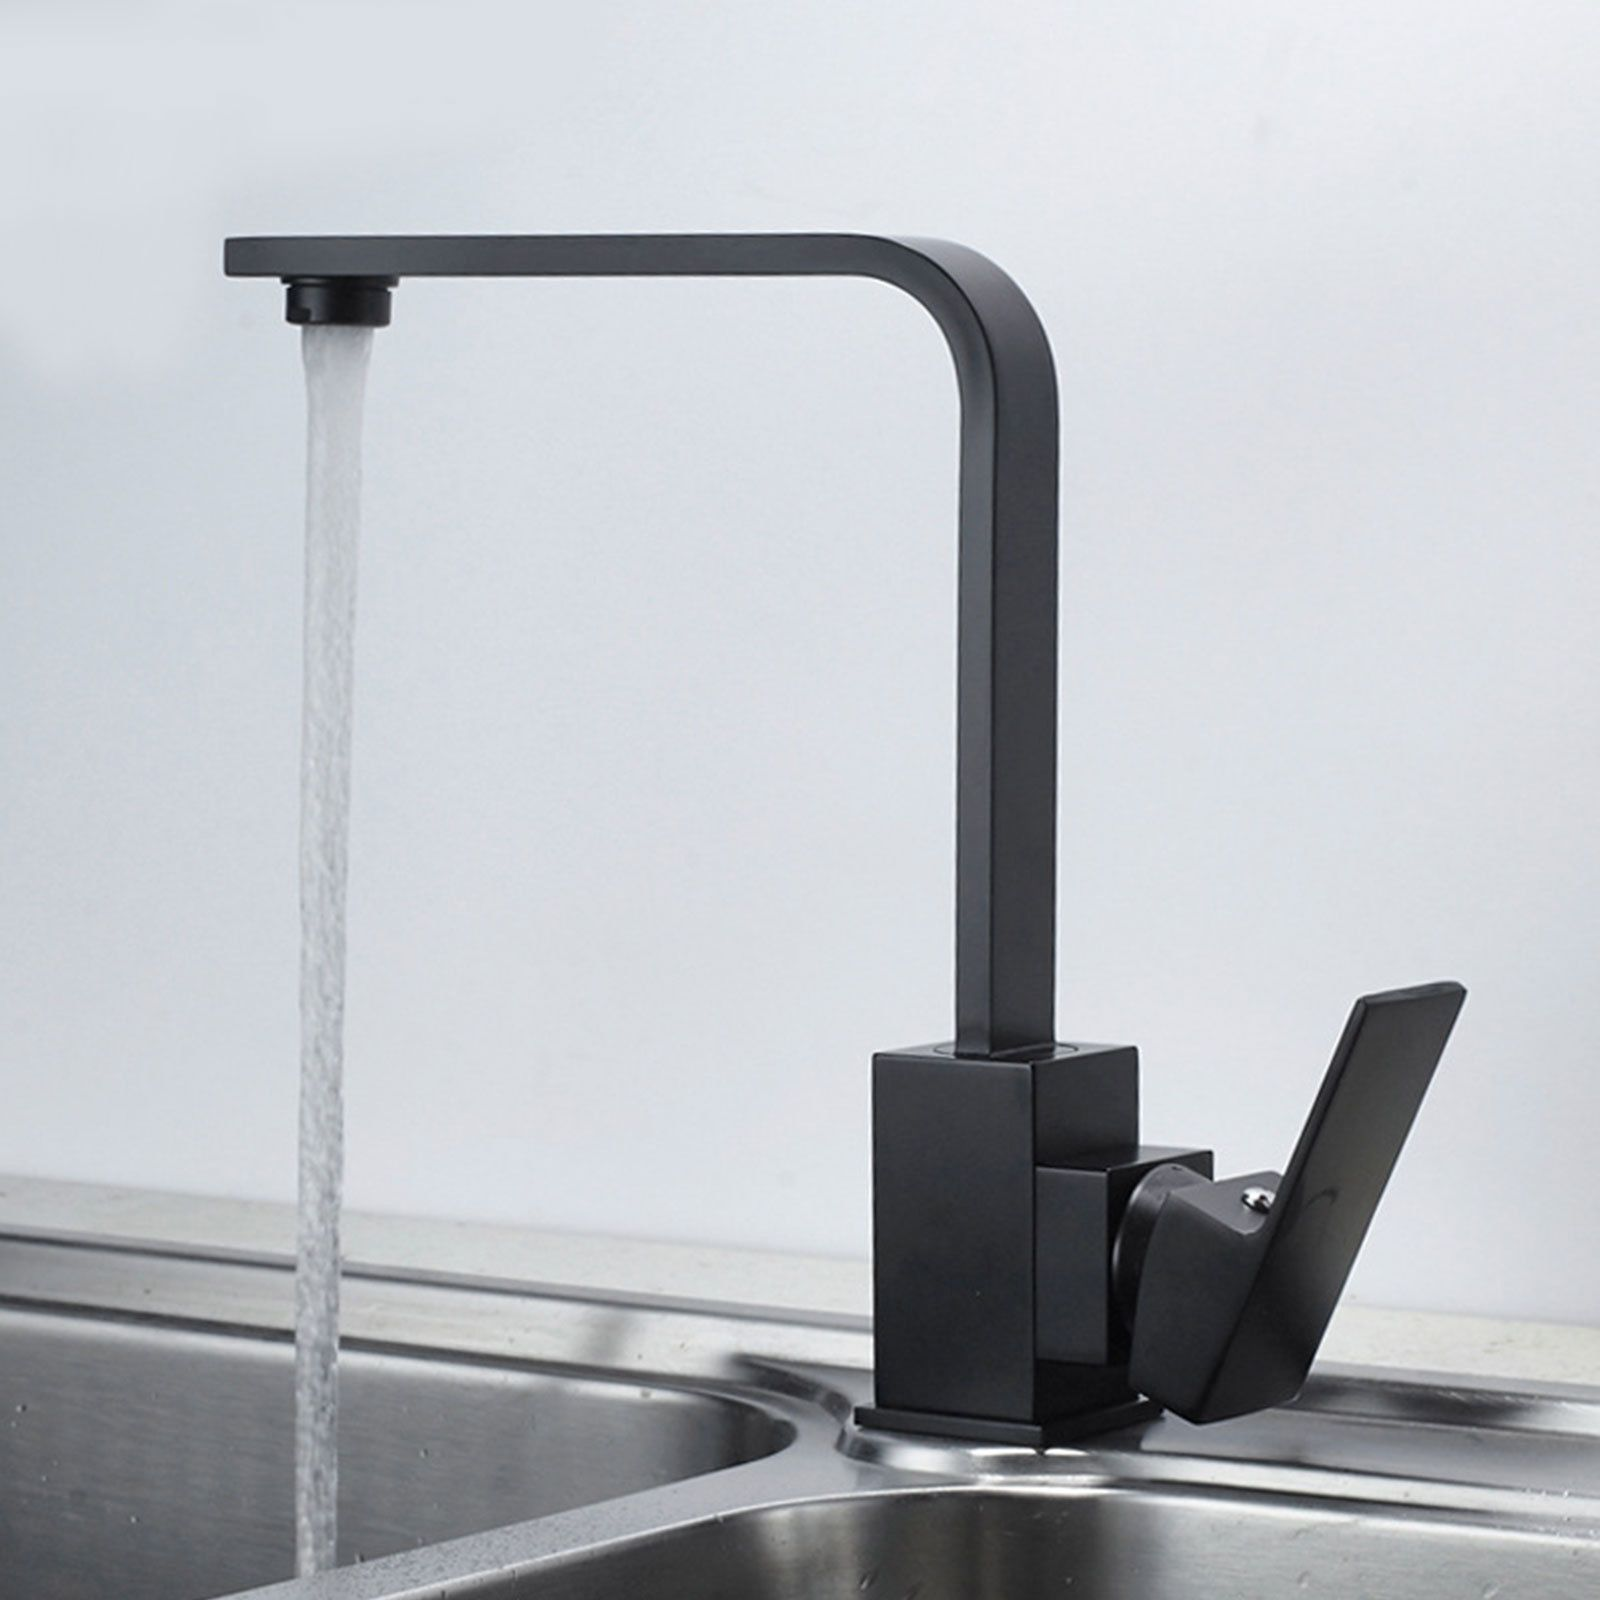 Details about Classic Retro Matt Black Brass Kitchen Basin